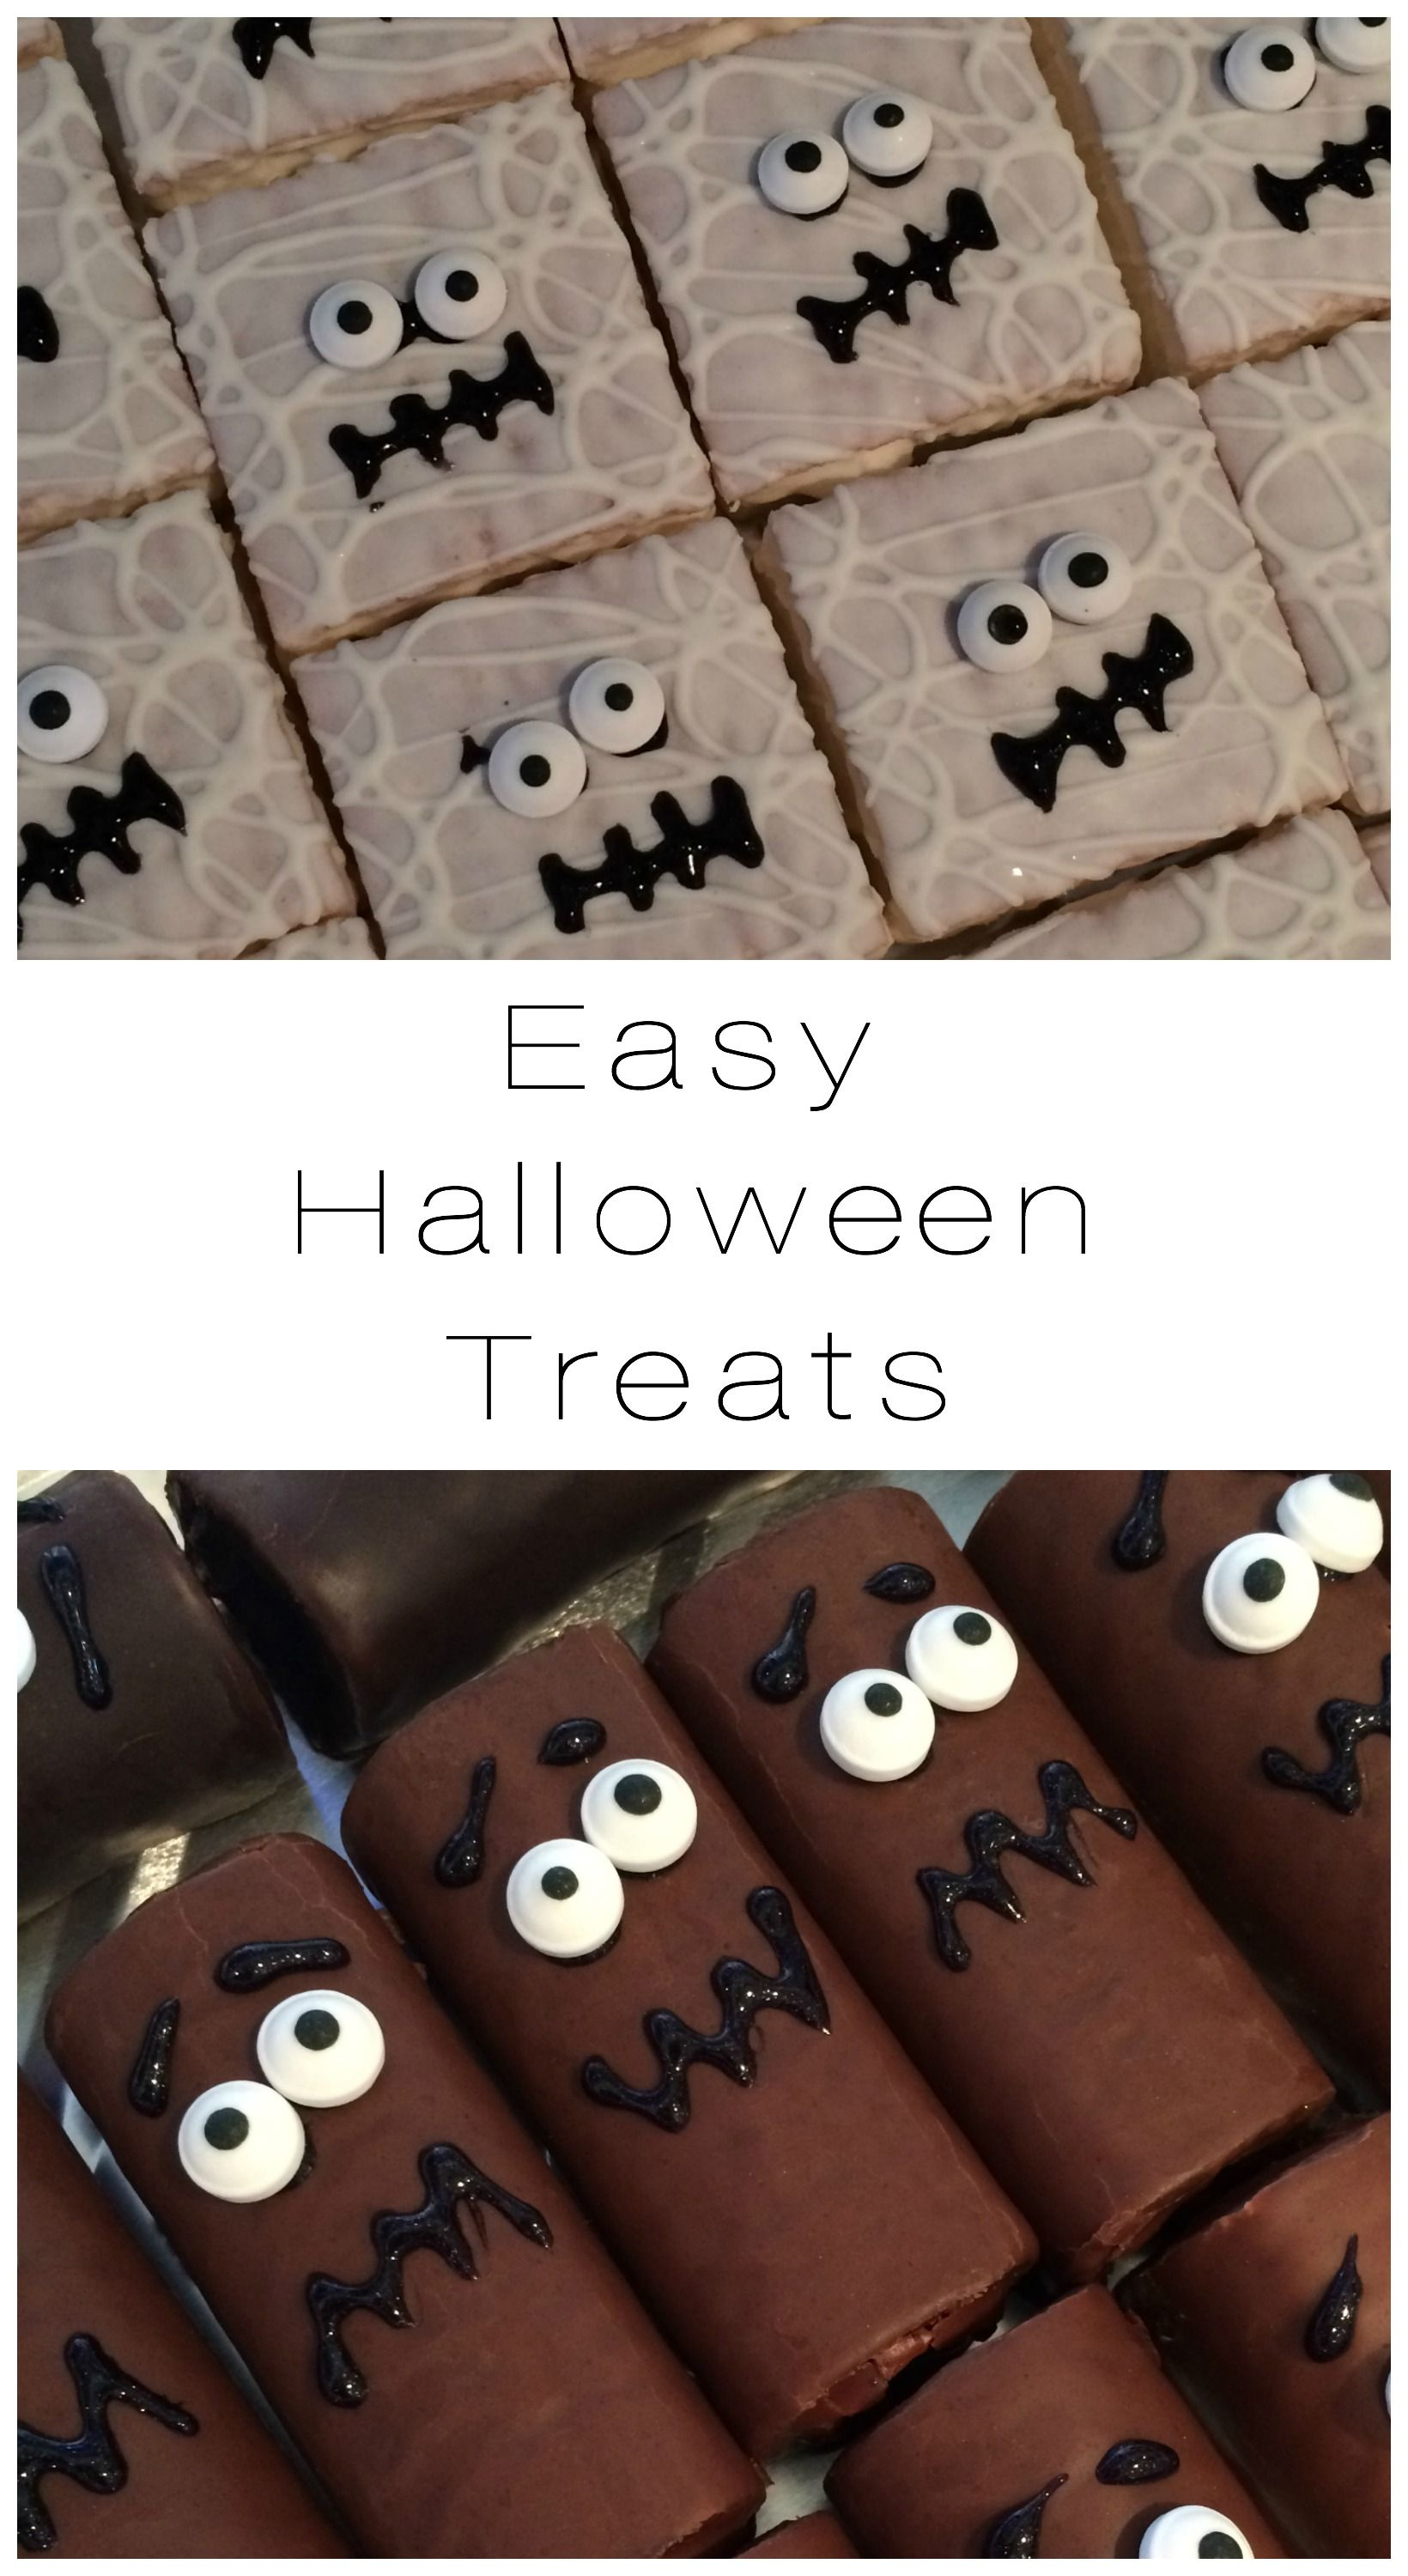 Halloween Cake Decorations Au : The 25+ best Easy halloween cakes ideas on Pinterest ...